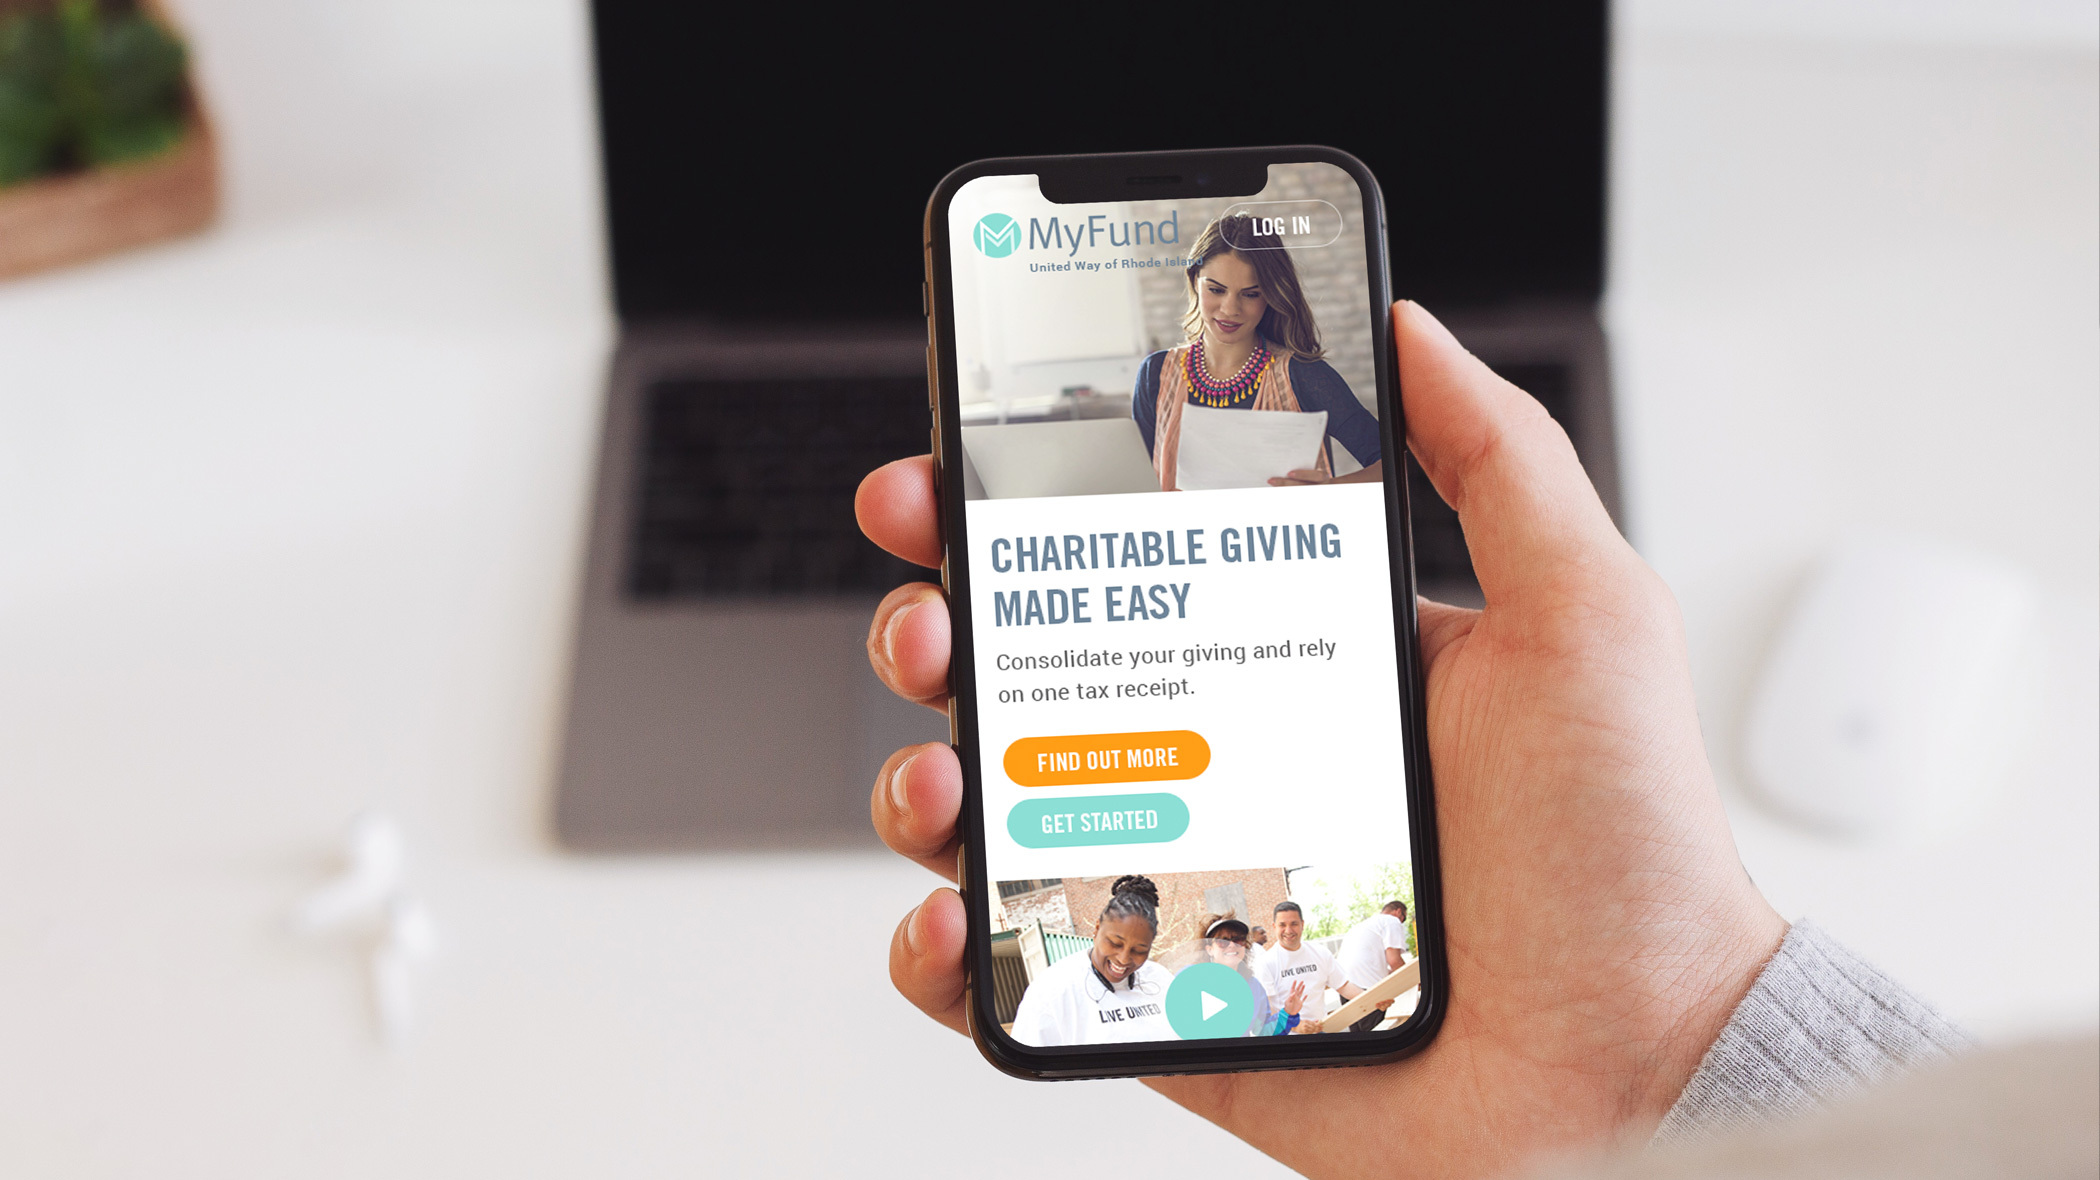 The MyFund marketing site visible on someone's phone